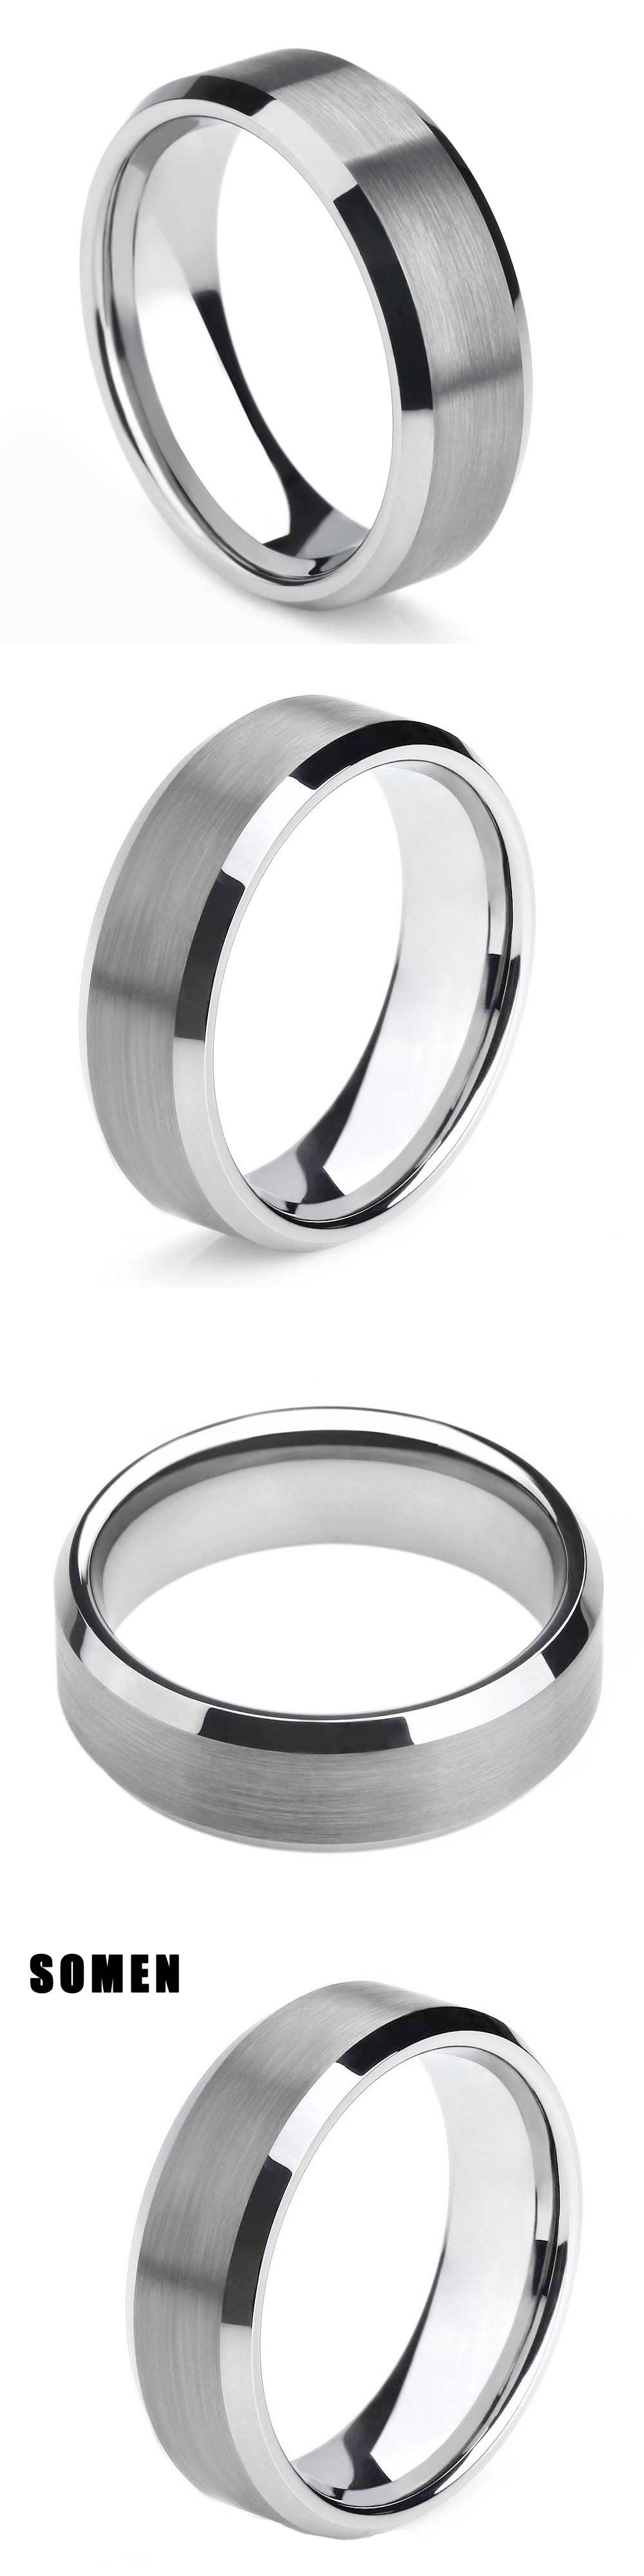 men wedding listing ring wood tungsten band carbide for black il rings fullxfull wooden